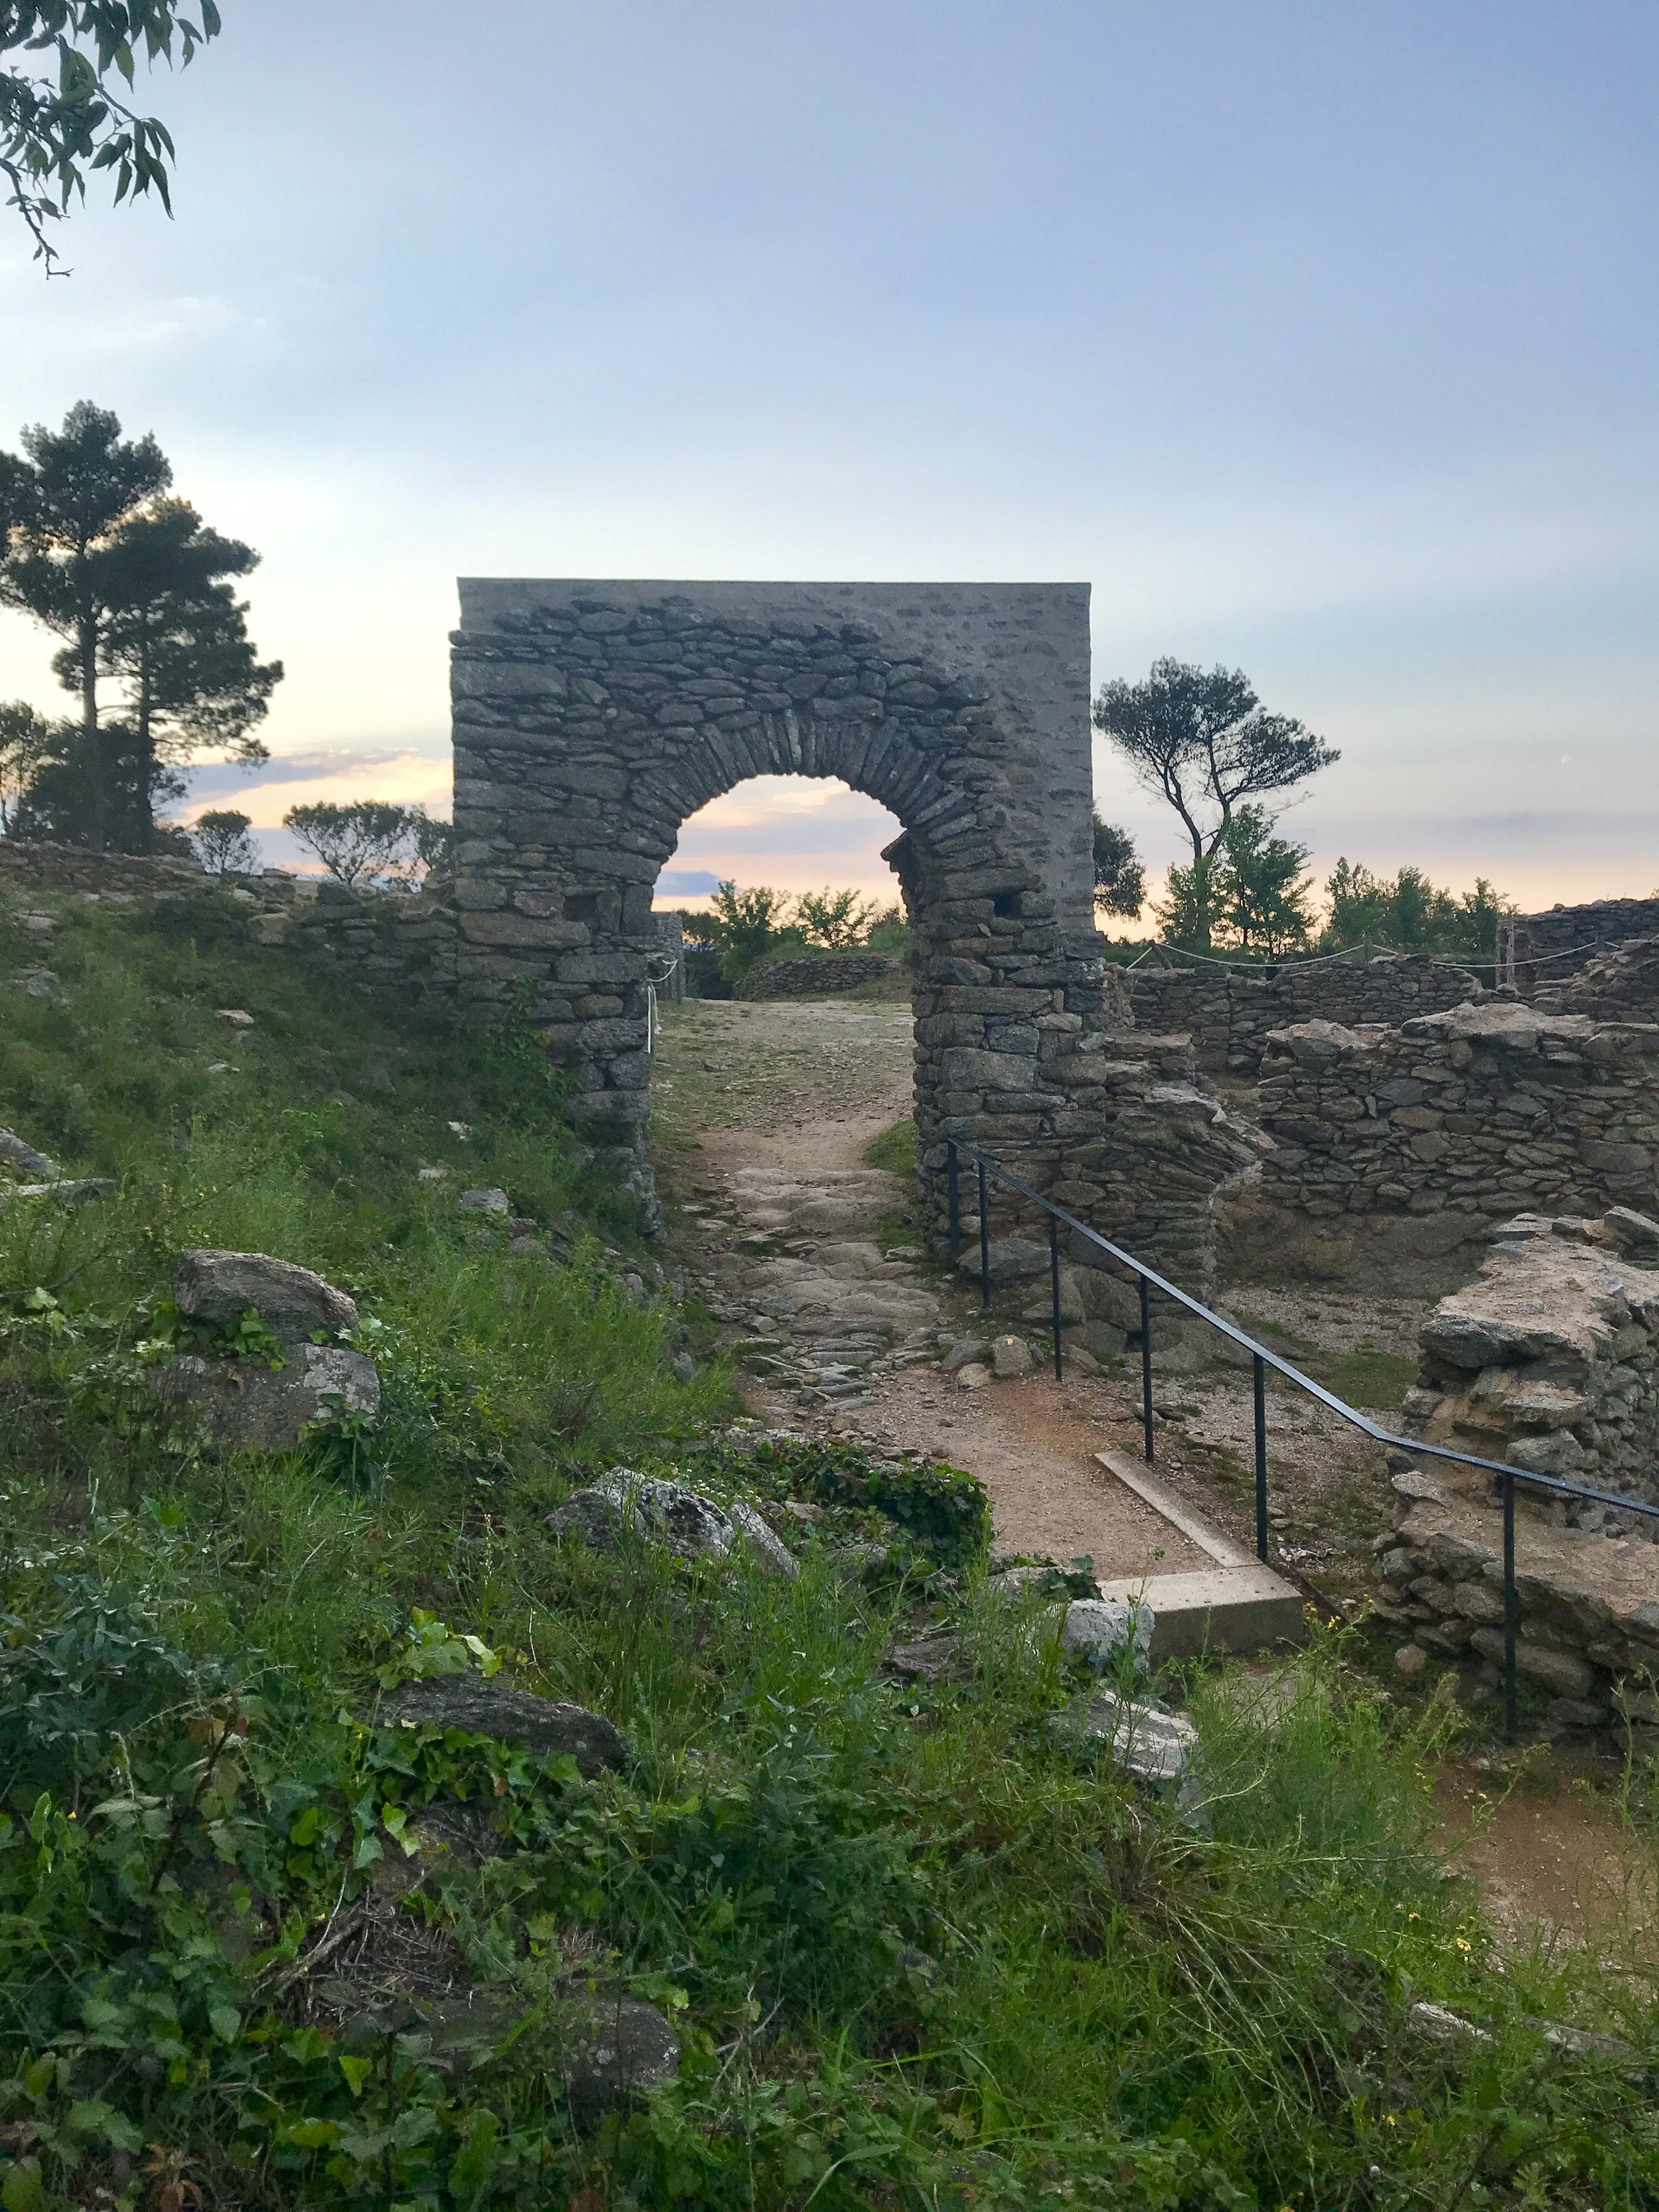 A short drive north of Girona took us here for sunset.